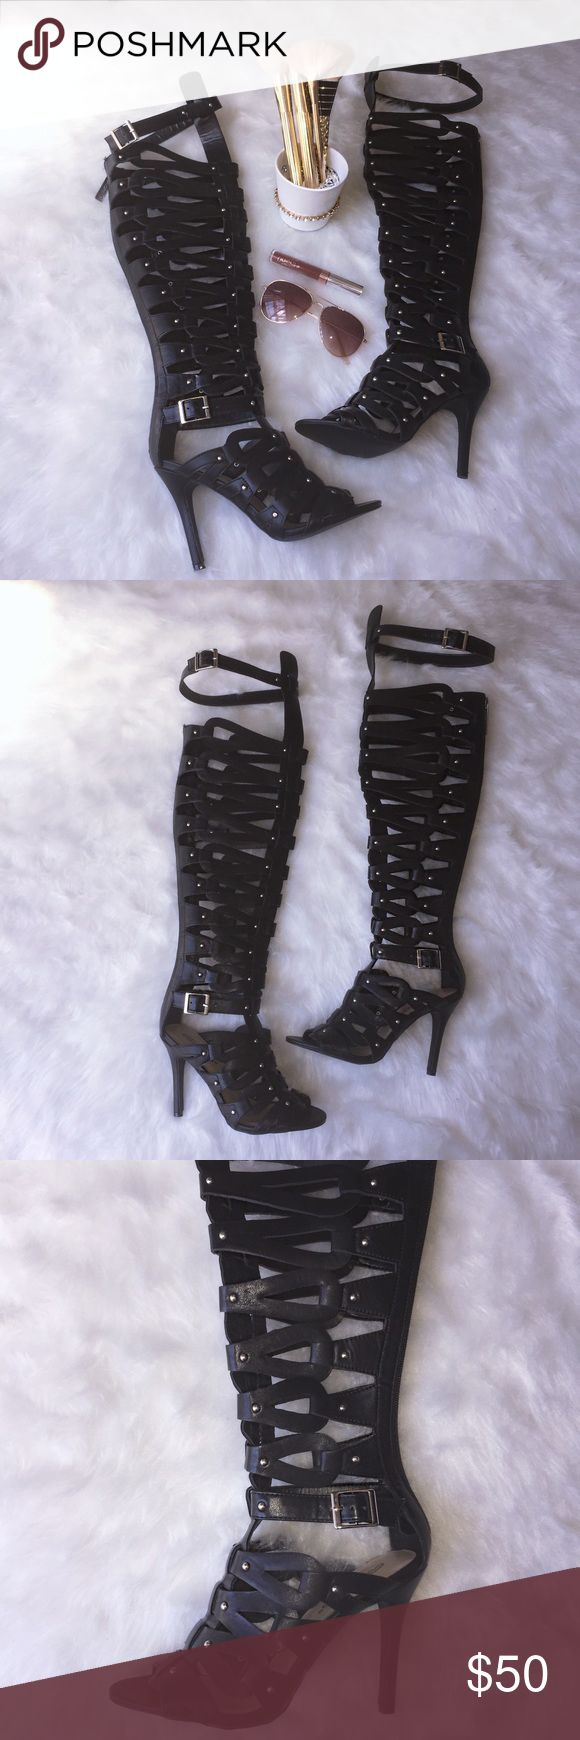 Black thigh high sandals w/ silver details&zipper Brand new black faux leather thigh high sandals with silver detailing and zipper. Size 6 {true to size} comes with pink duster bags. If you have any questions feel free to ask! No trades. Shoes Heels